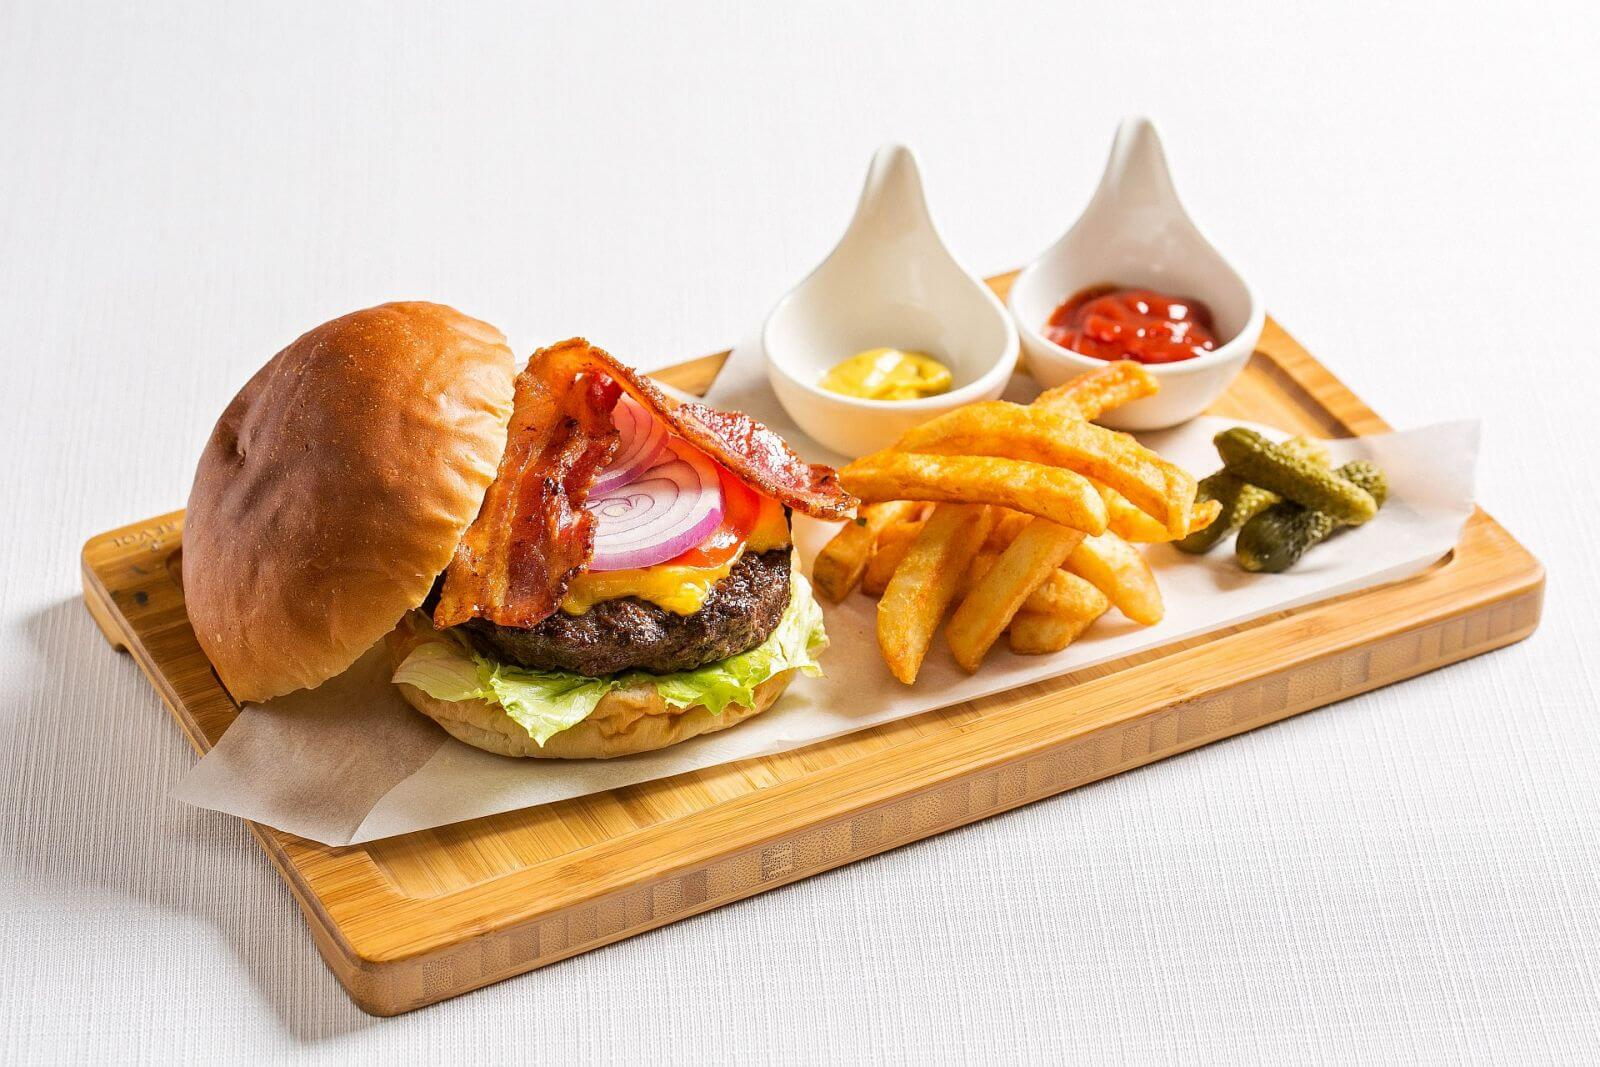 Ambassador Hotel Taipei Aqua Bar Wagyu Beef Burgef with Cheese